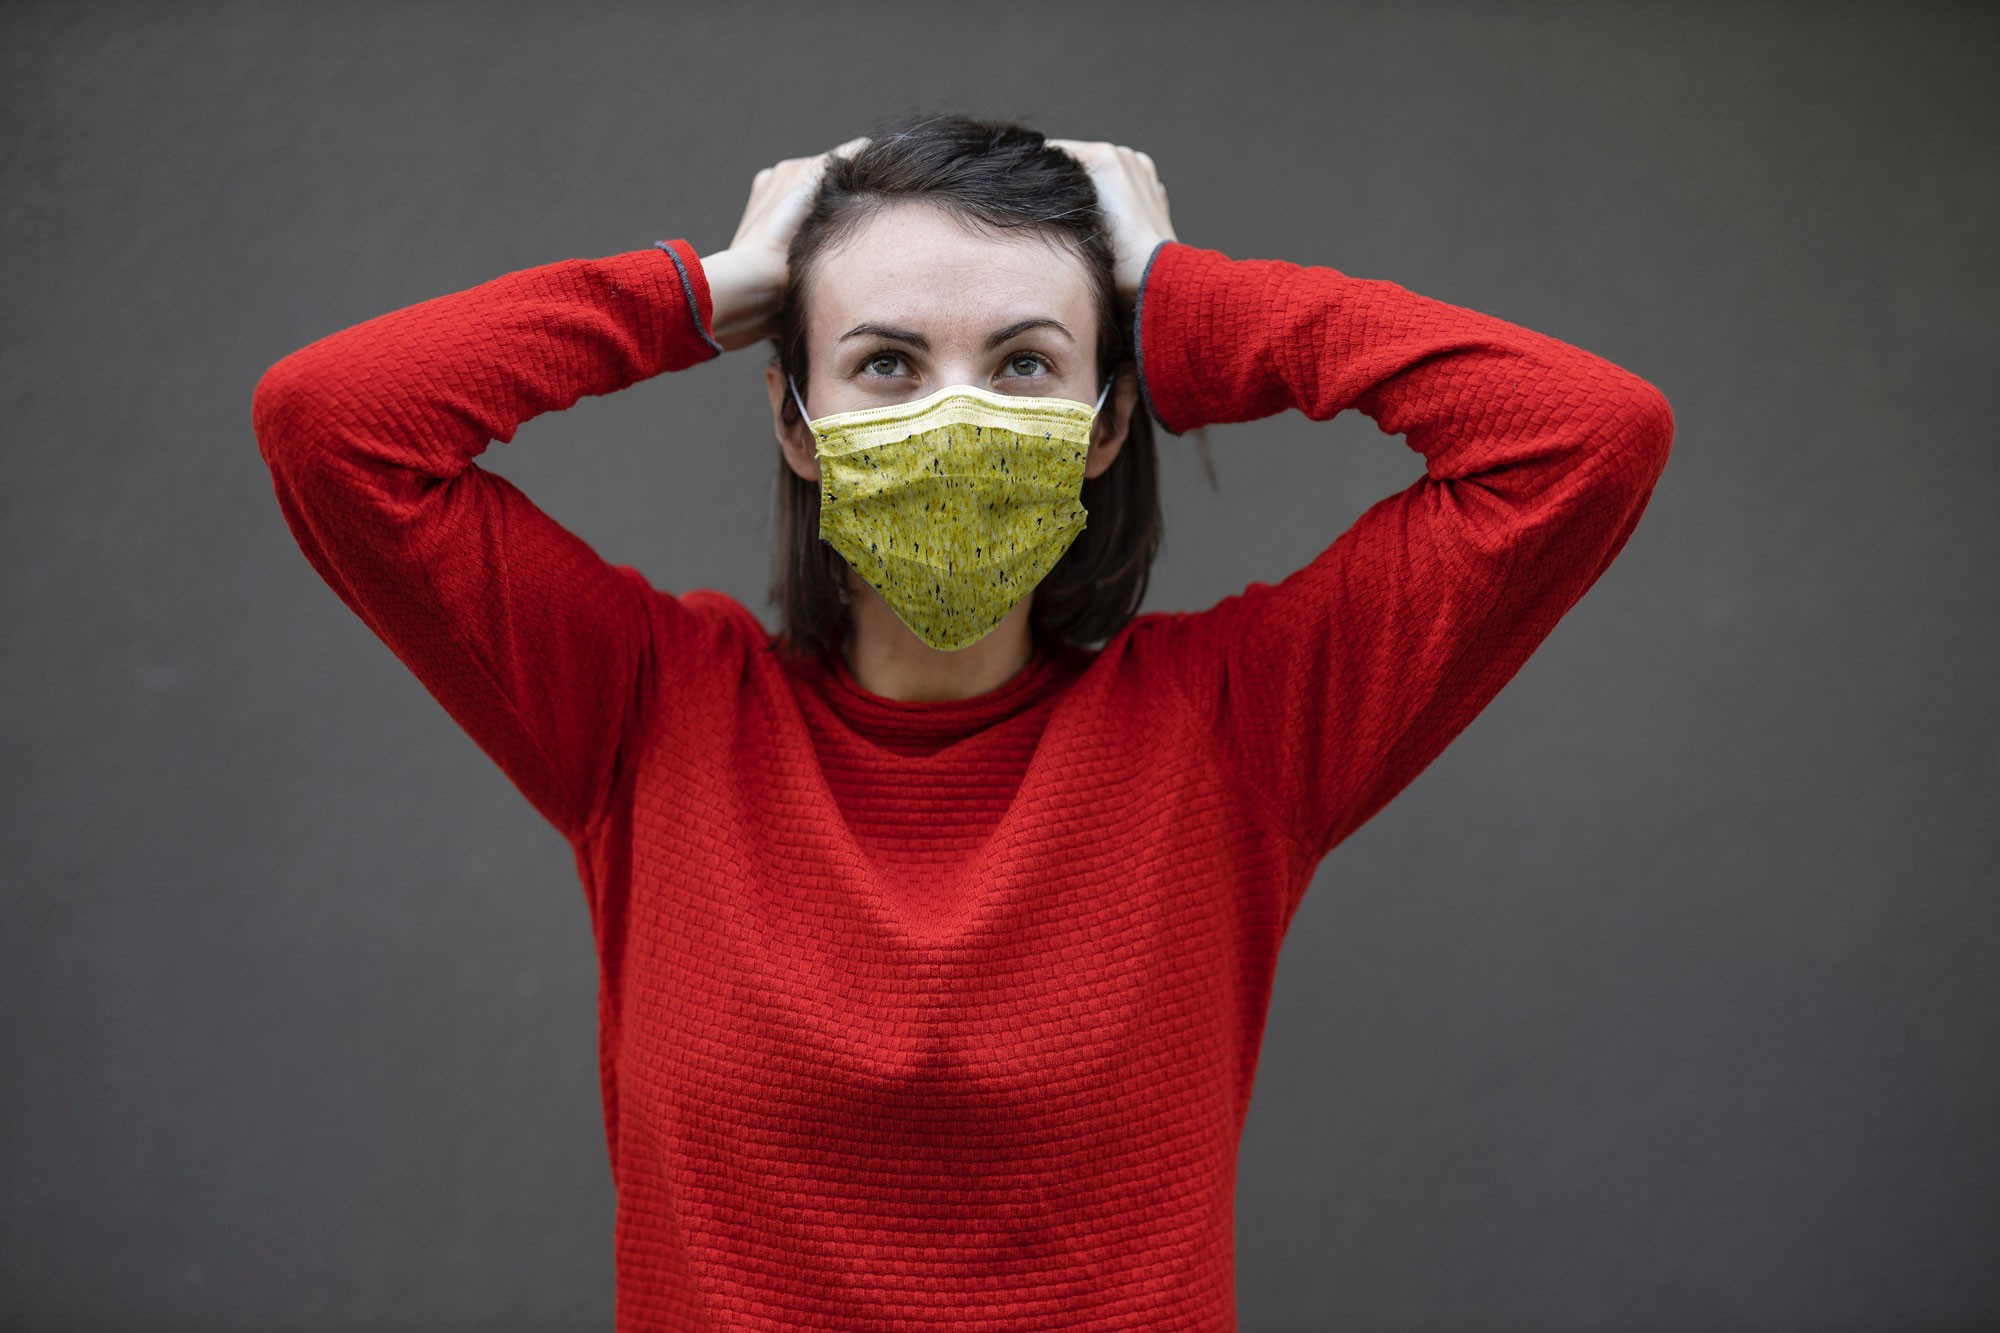 Mask Mockup With Young Woman in Red Sweater